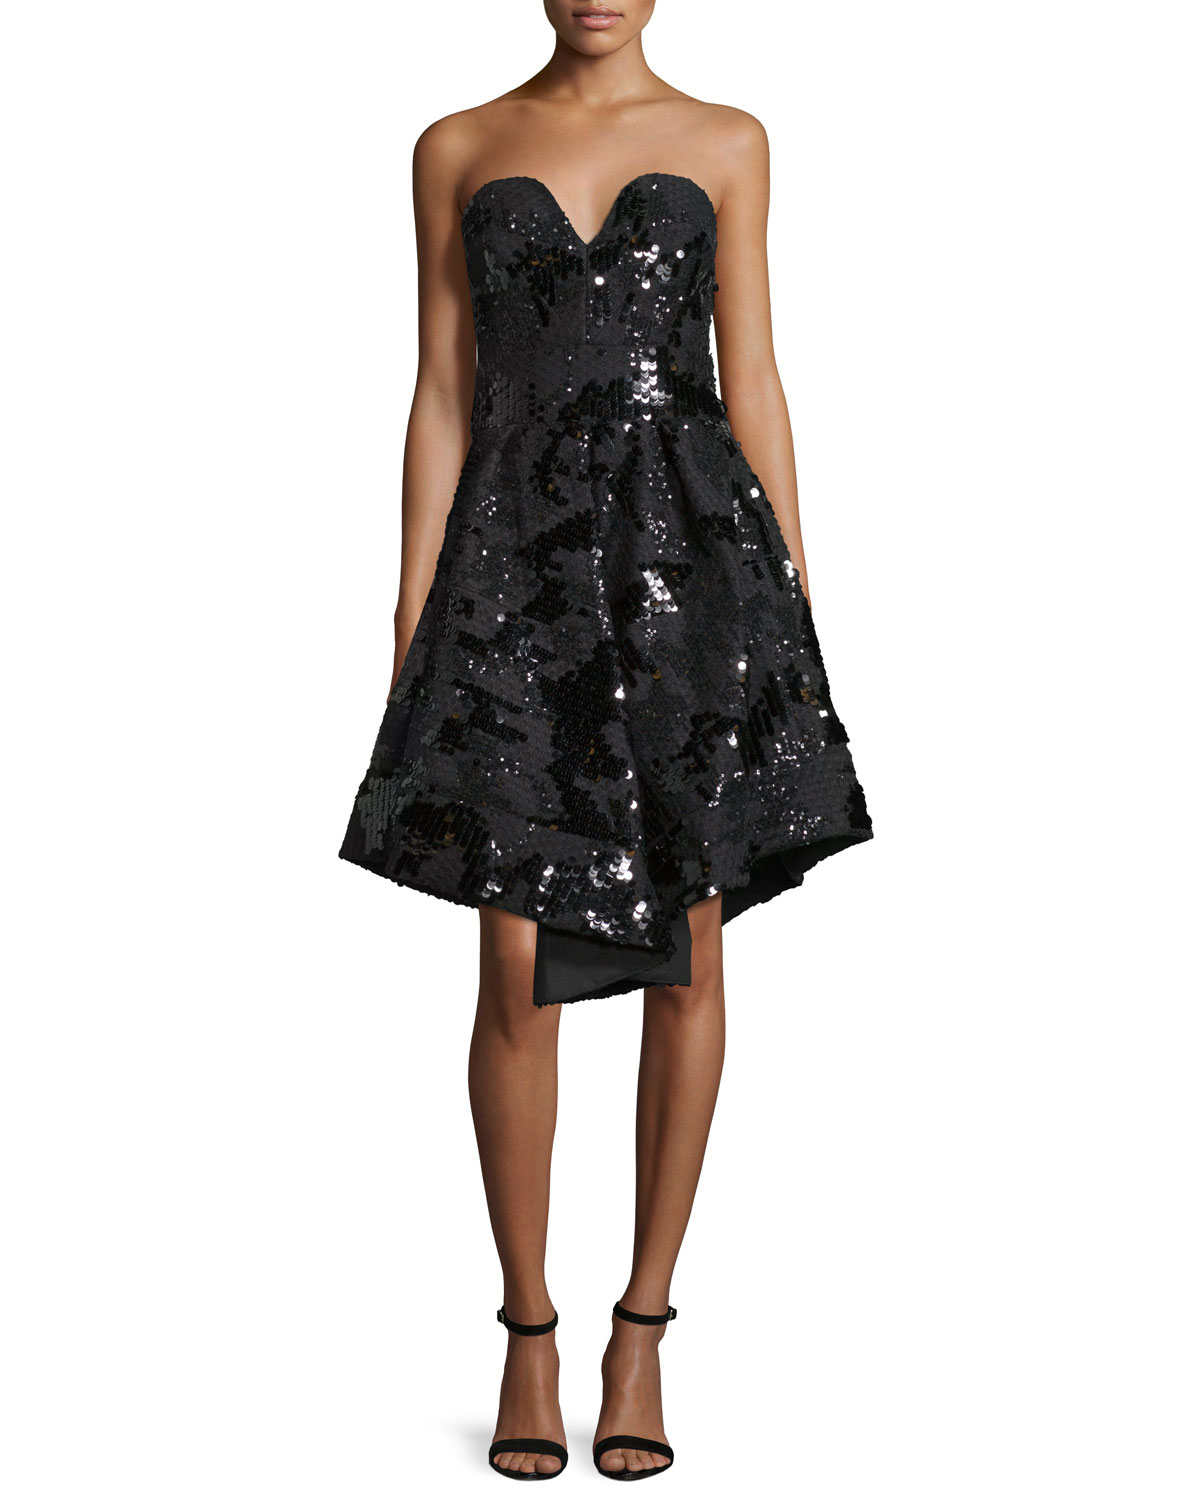 Strapless Sequined Cocktail Dress, Black